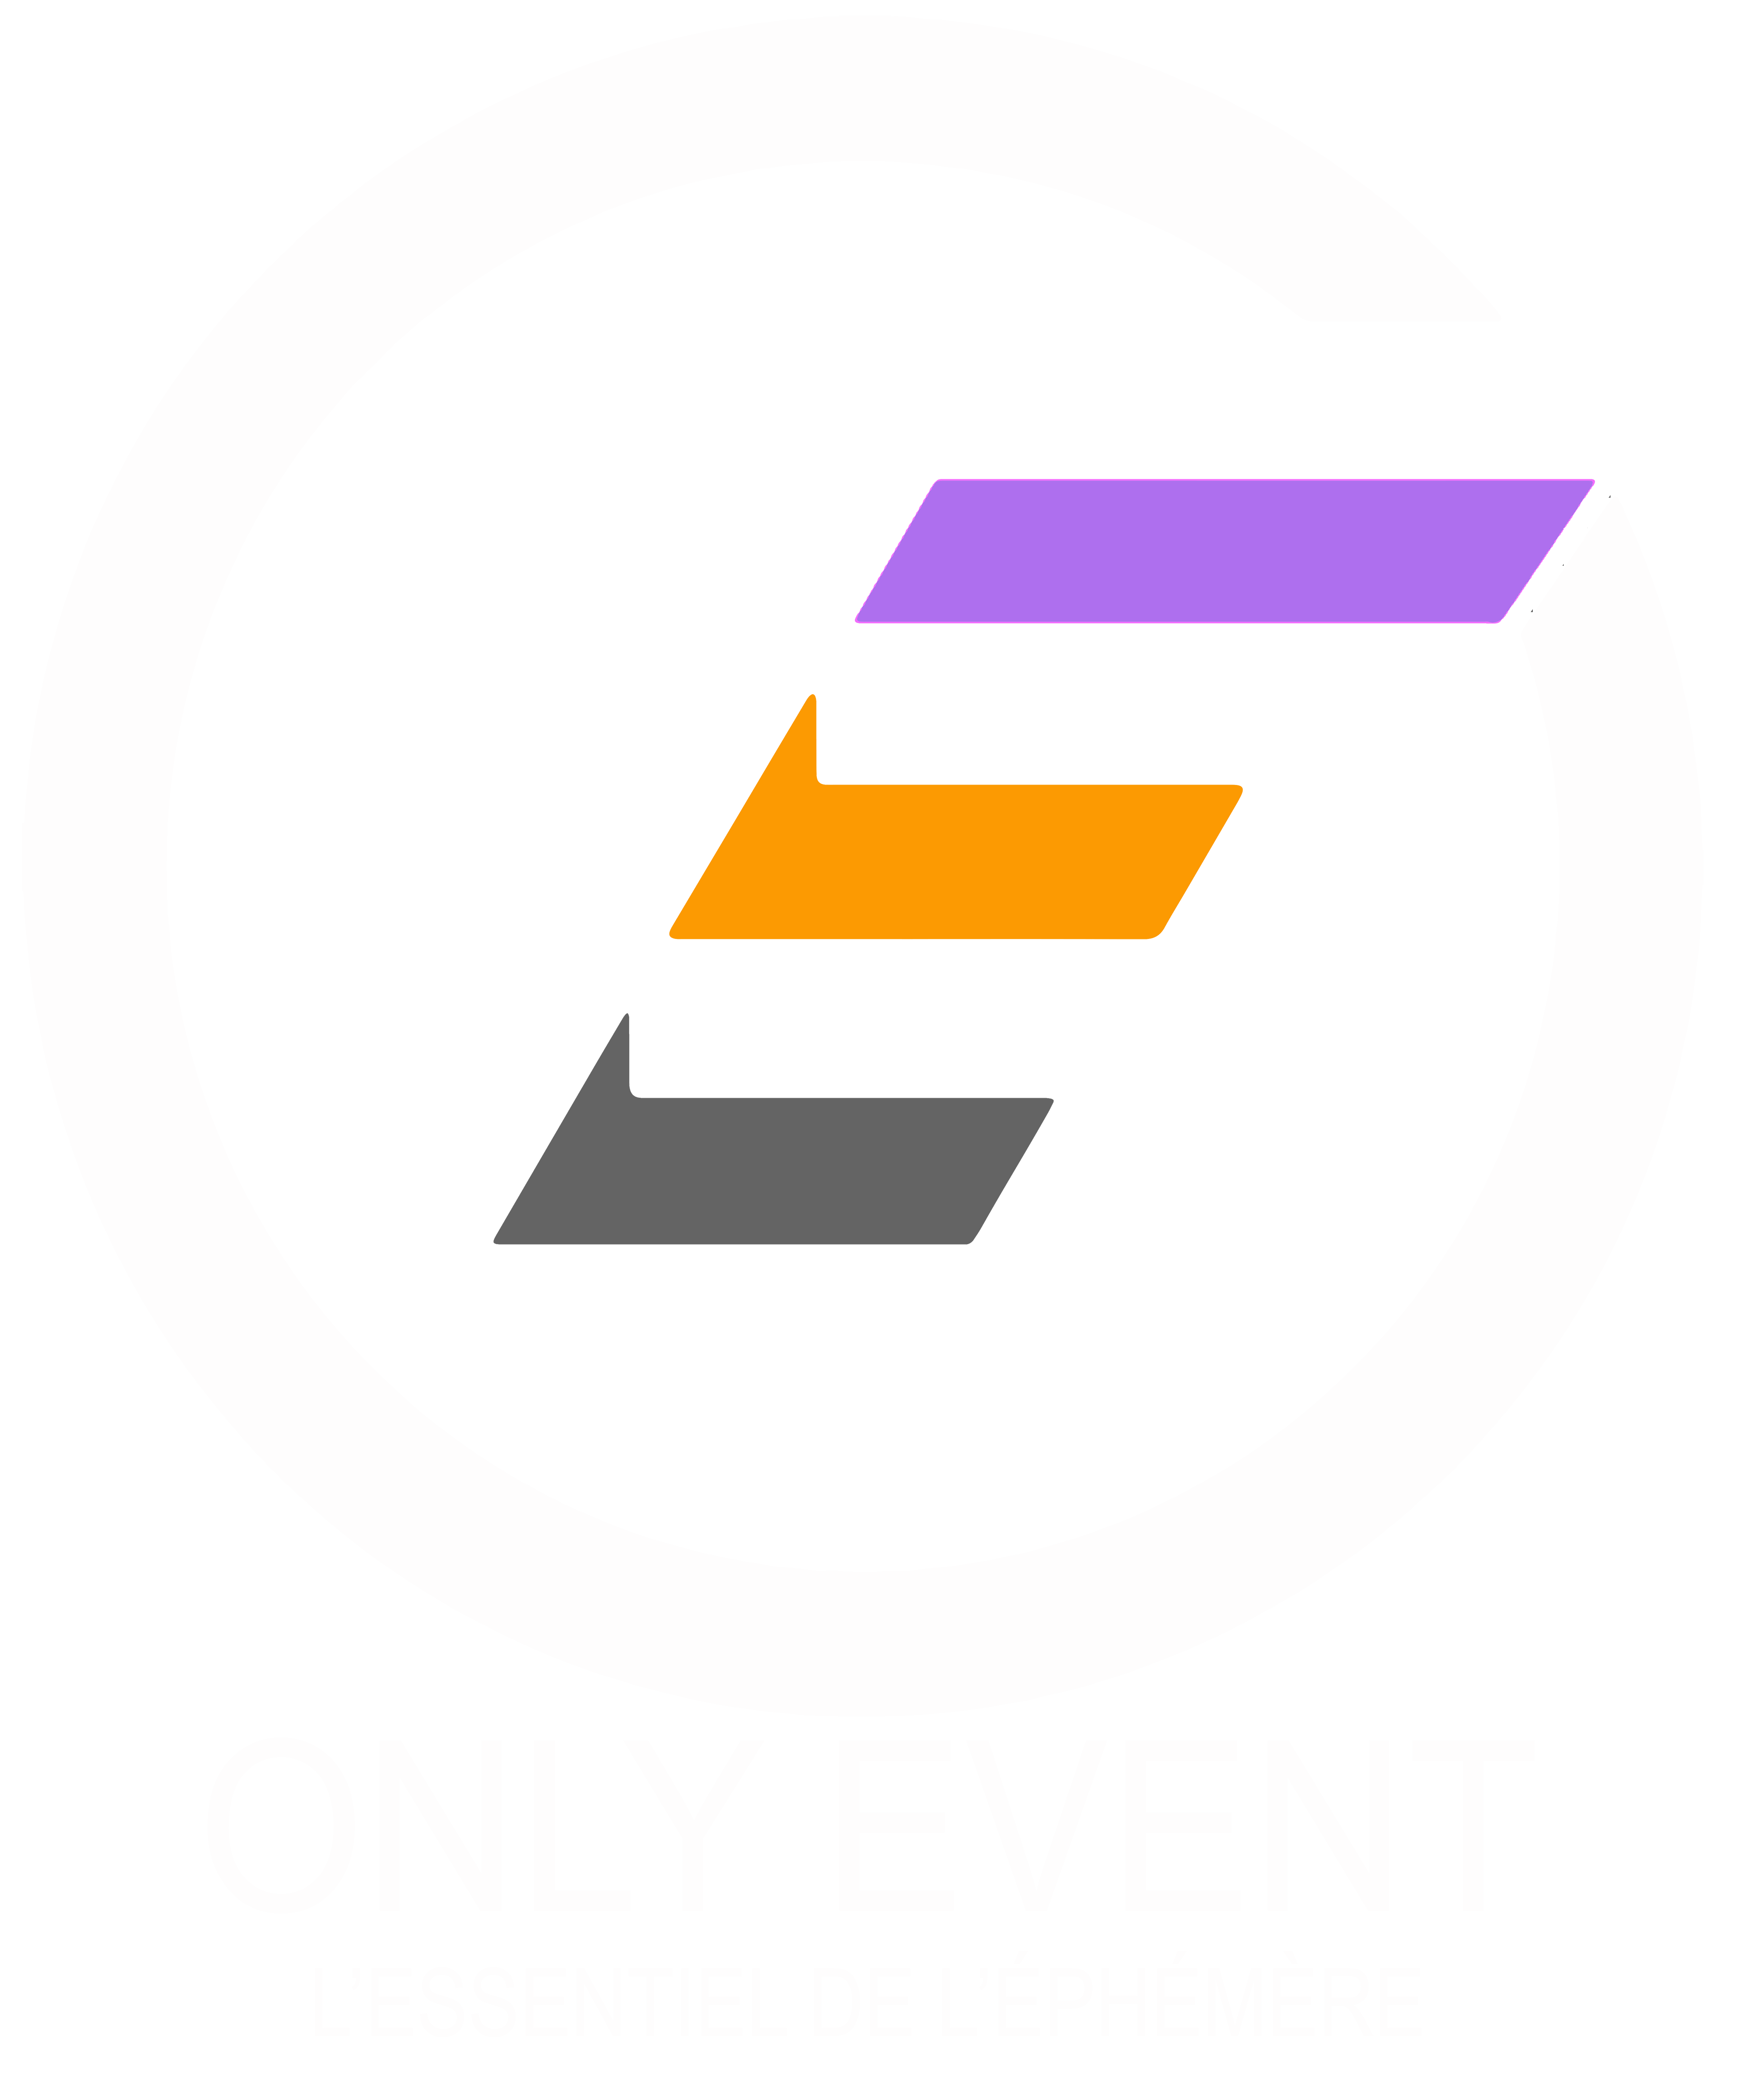 ONLY EVENT